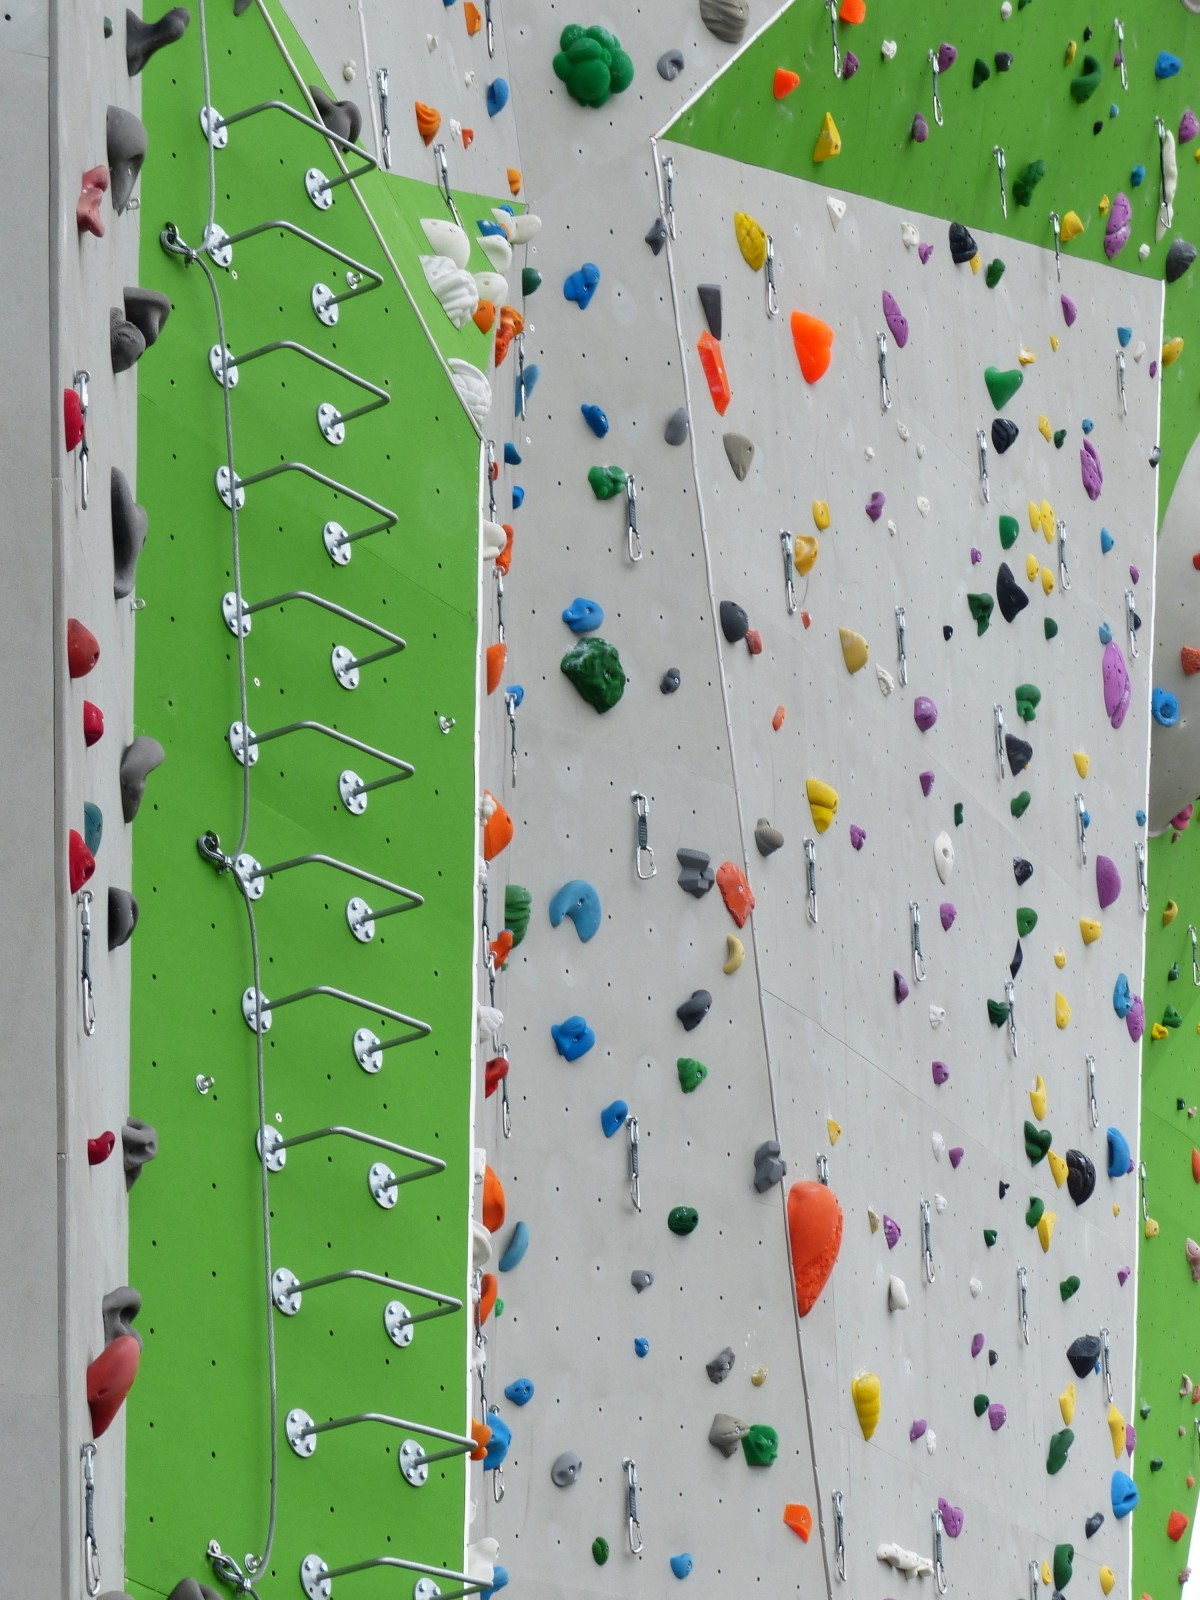 Free Images  adventure rock climbing climber extreme